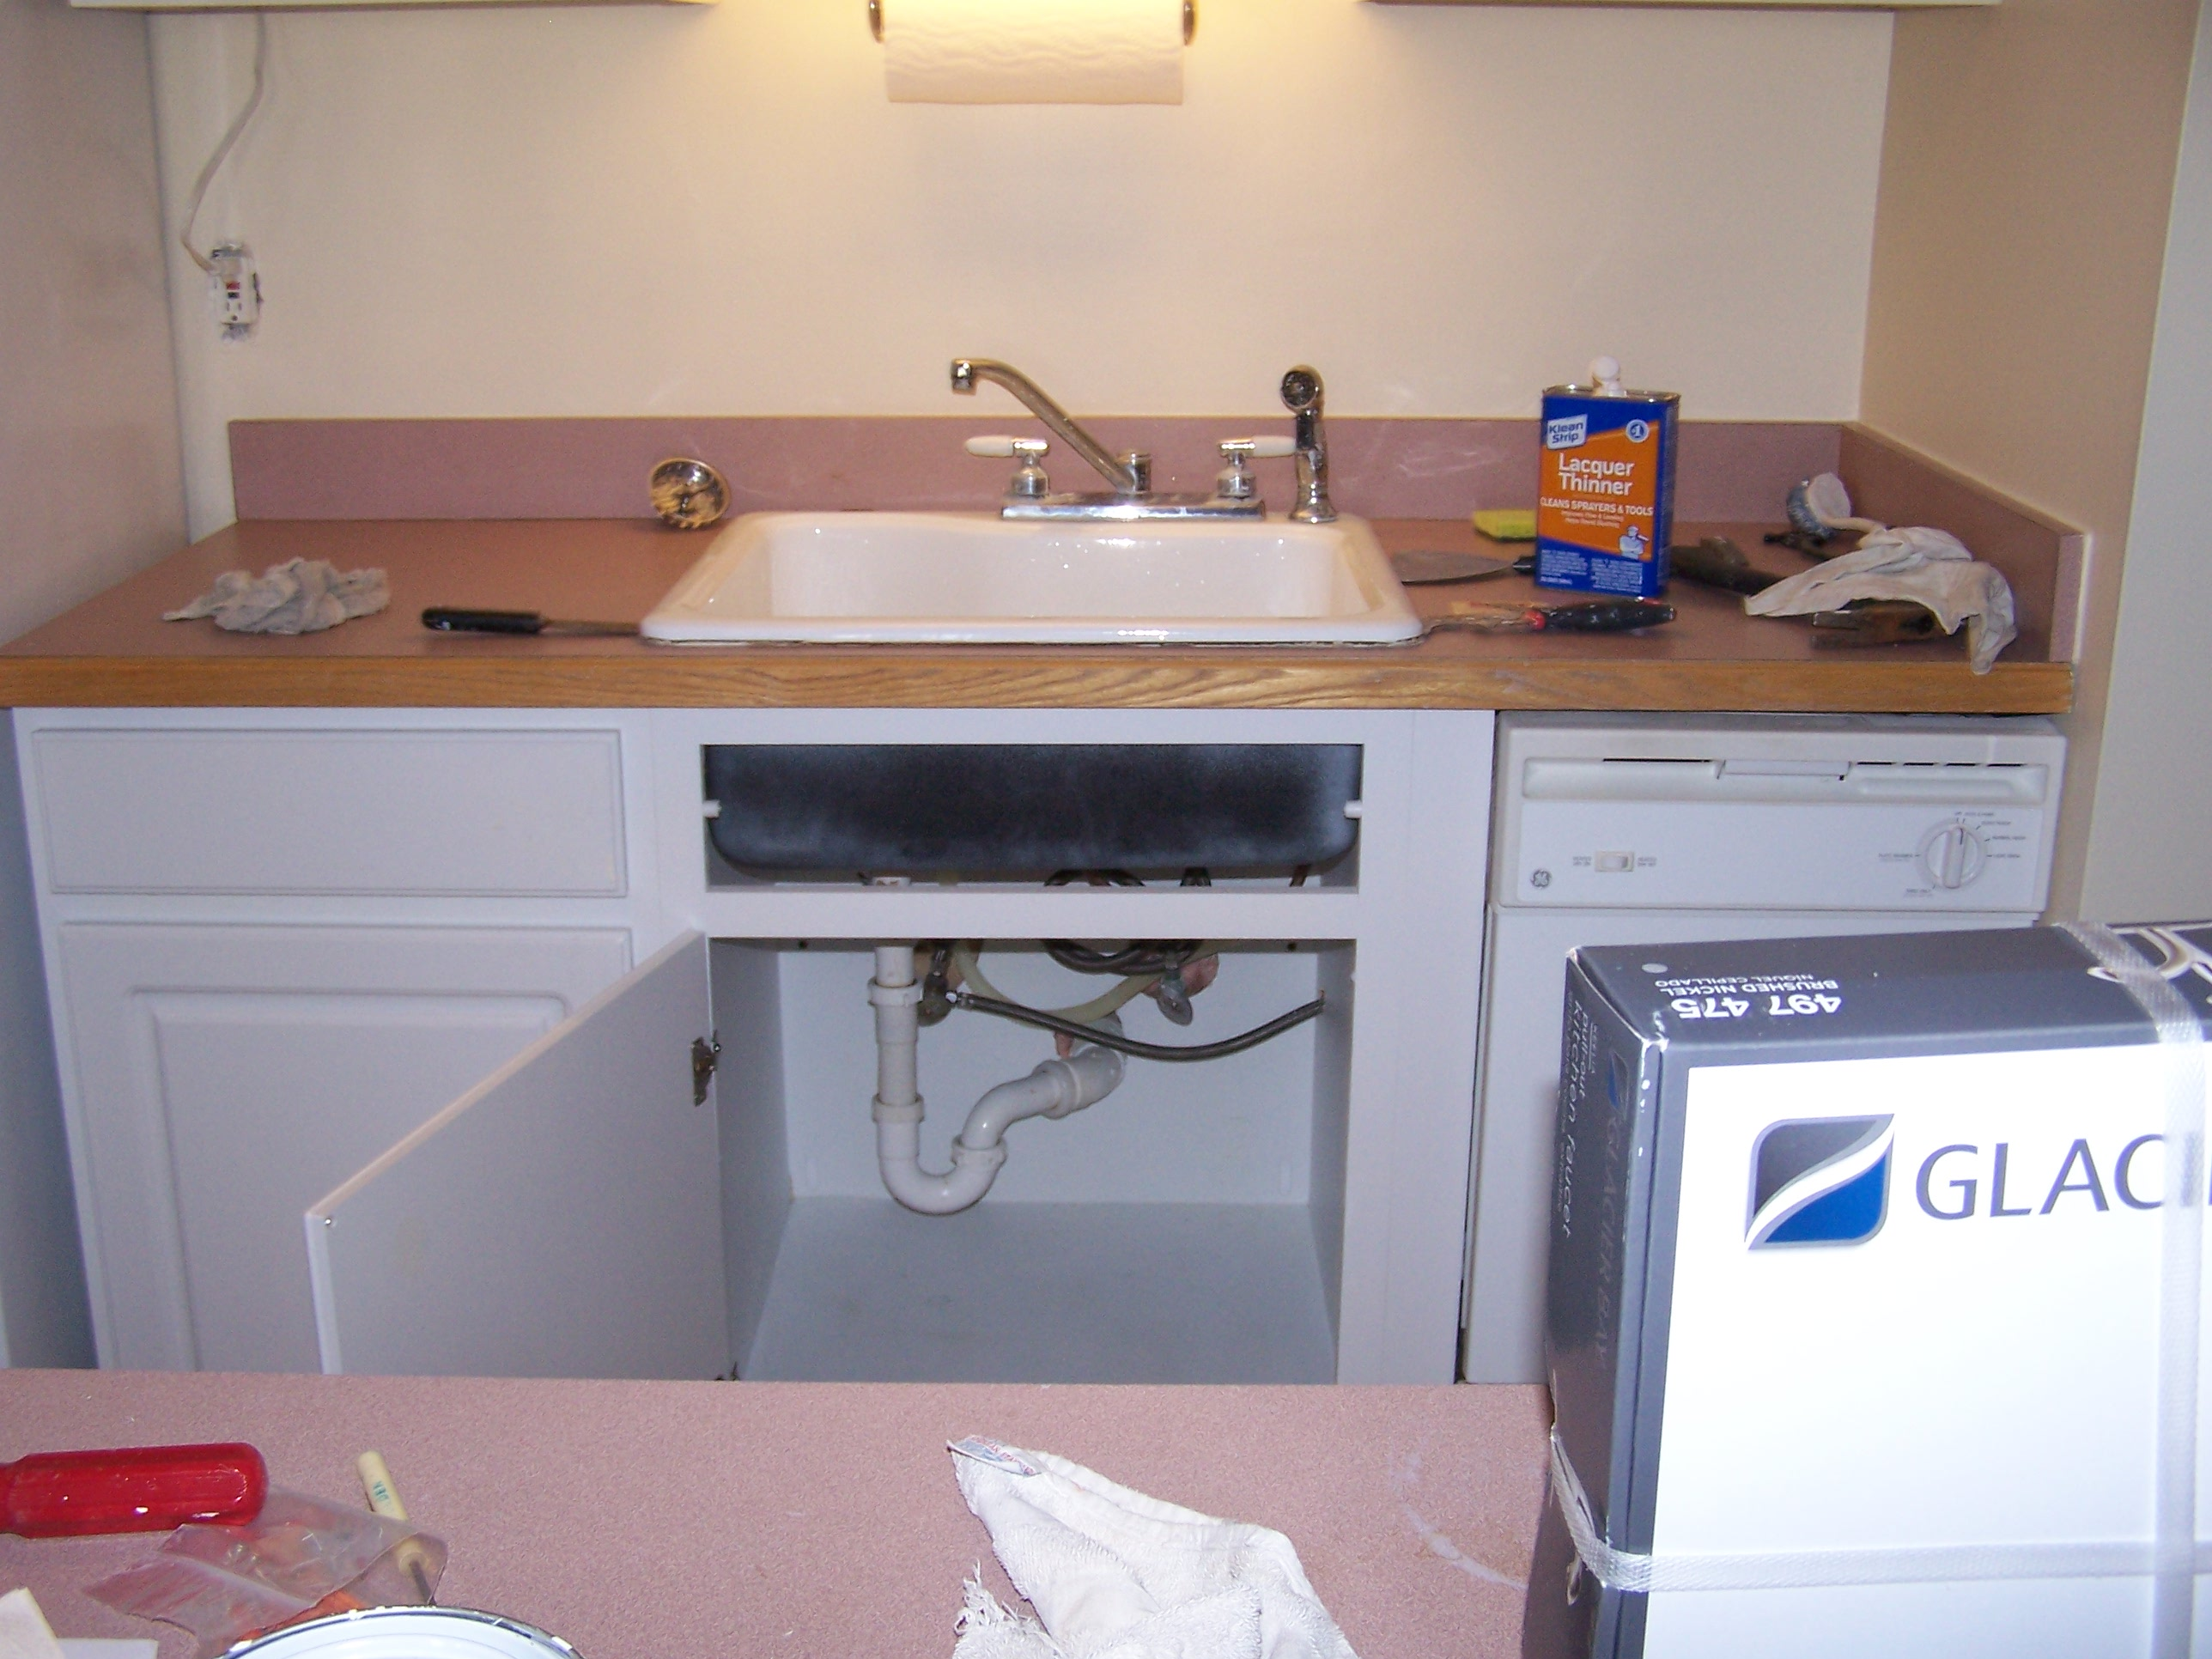 Kitchen Faucet Replacement STG style-100_1417.jpg